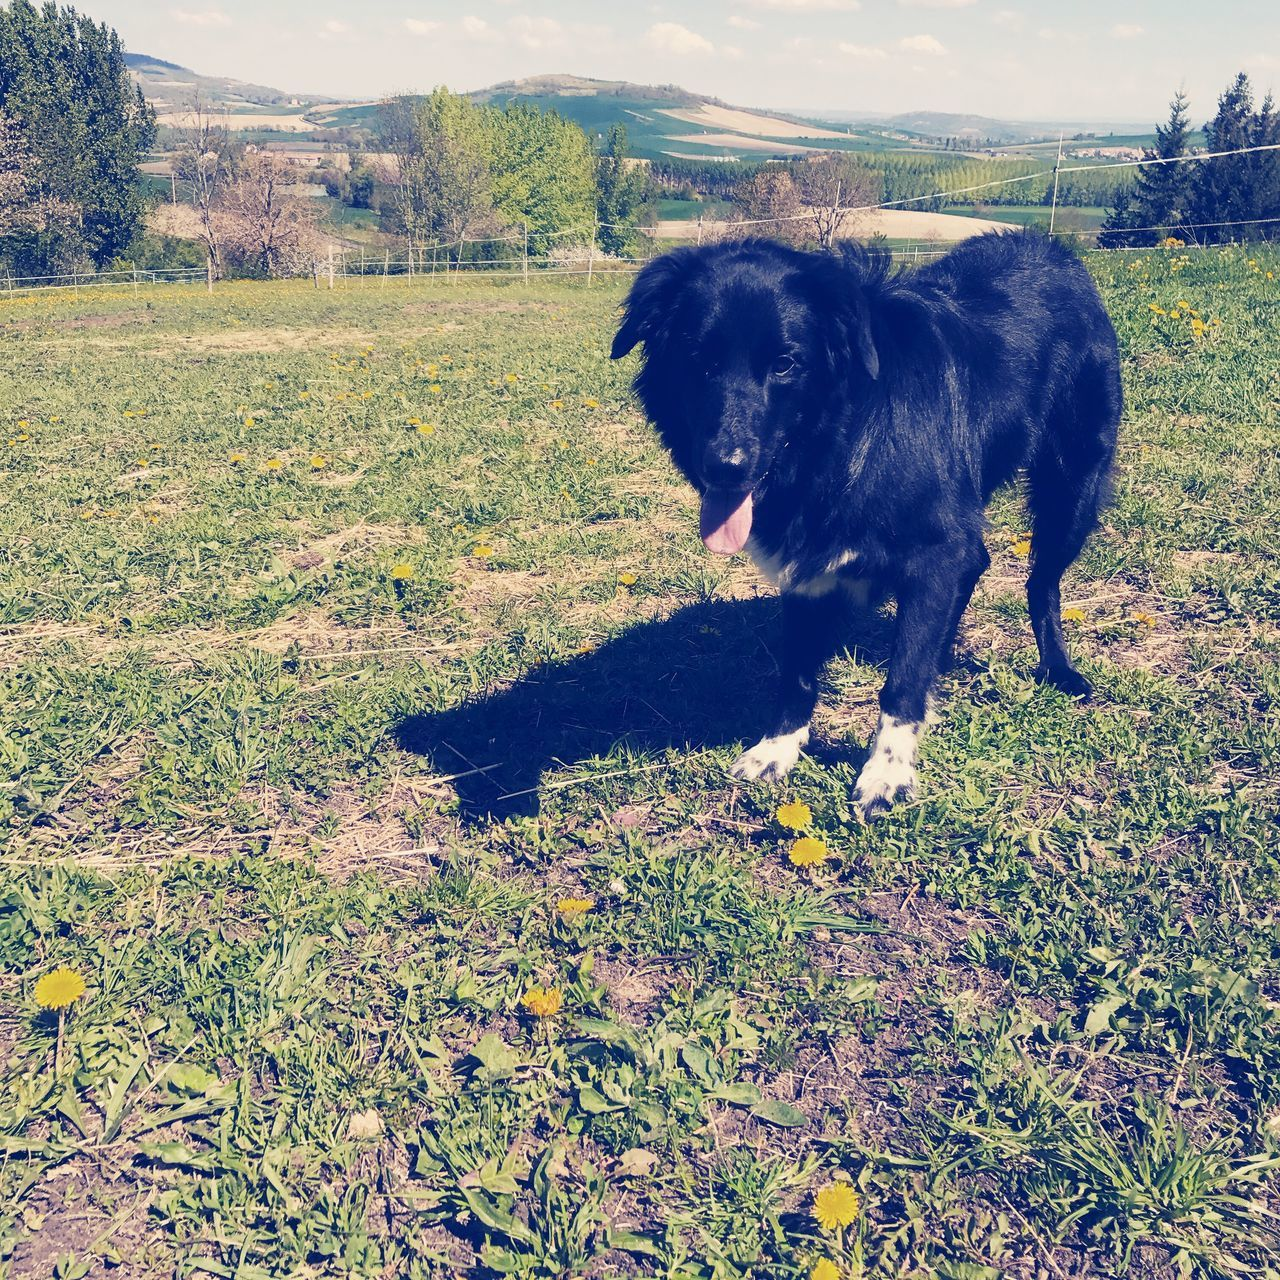 dog, domestic animals, pets, animal themes, one animal, mammal, field, grass, nature, no people, day, outdoors, black color, landscape, sky